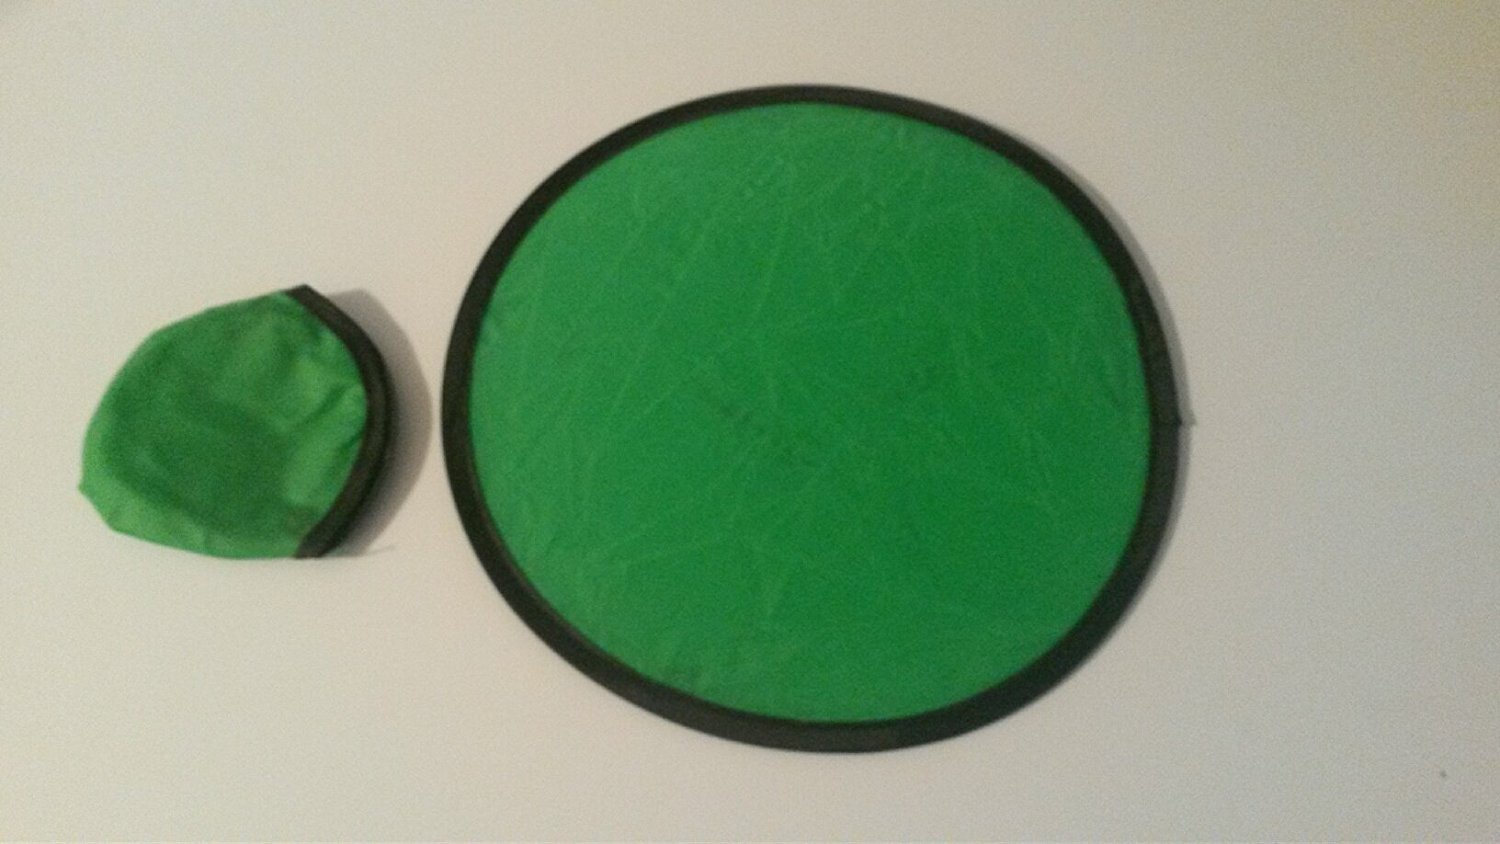 Much More For Less !! 100 Quantity Folding Toy Pocket Disc Flyer with Pouch ( GREEN ) by SHOPINUSA